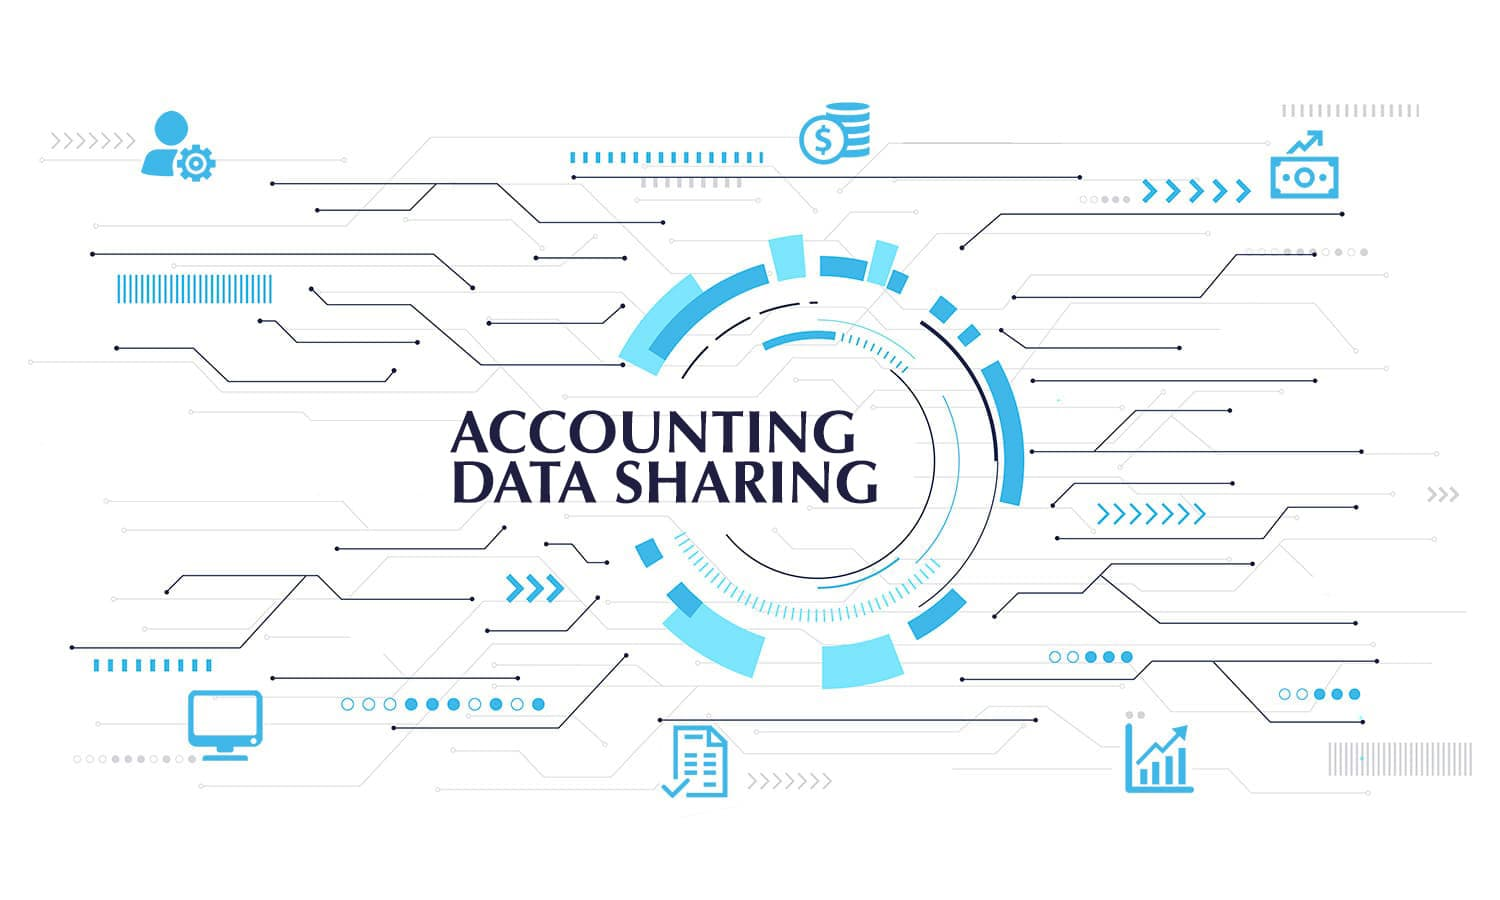 SapphireOne enables seamless accounting data sharing